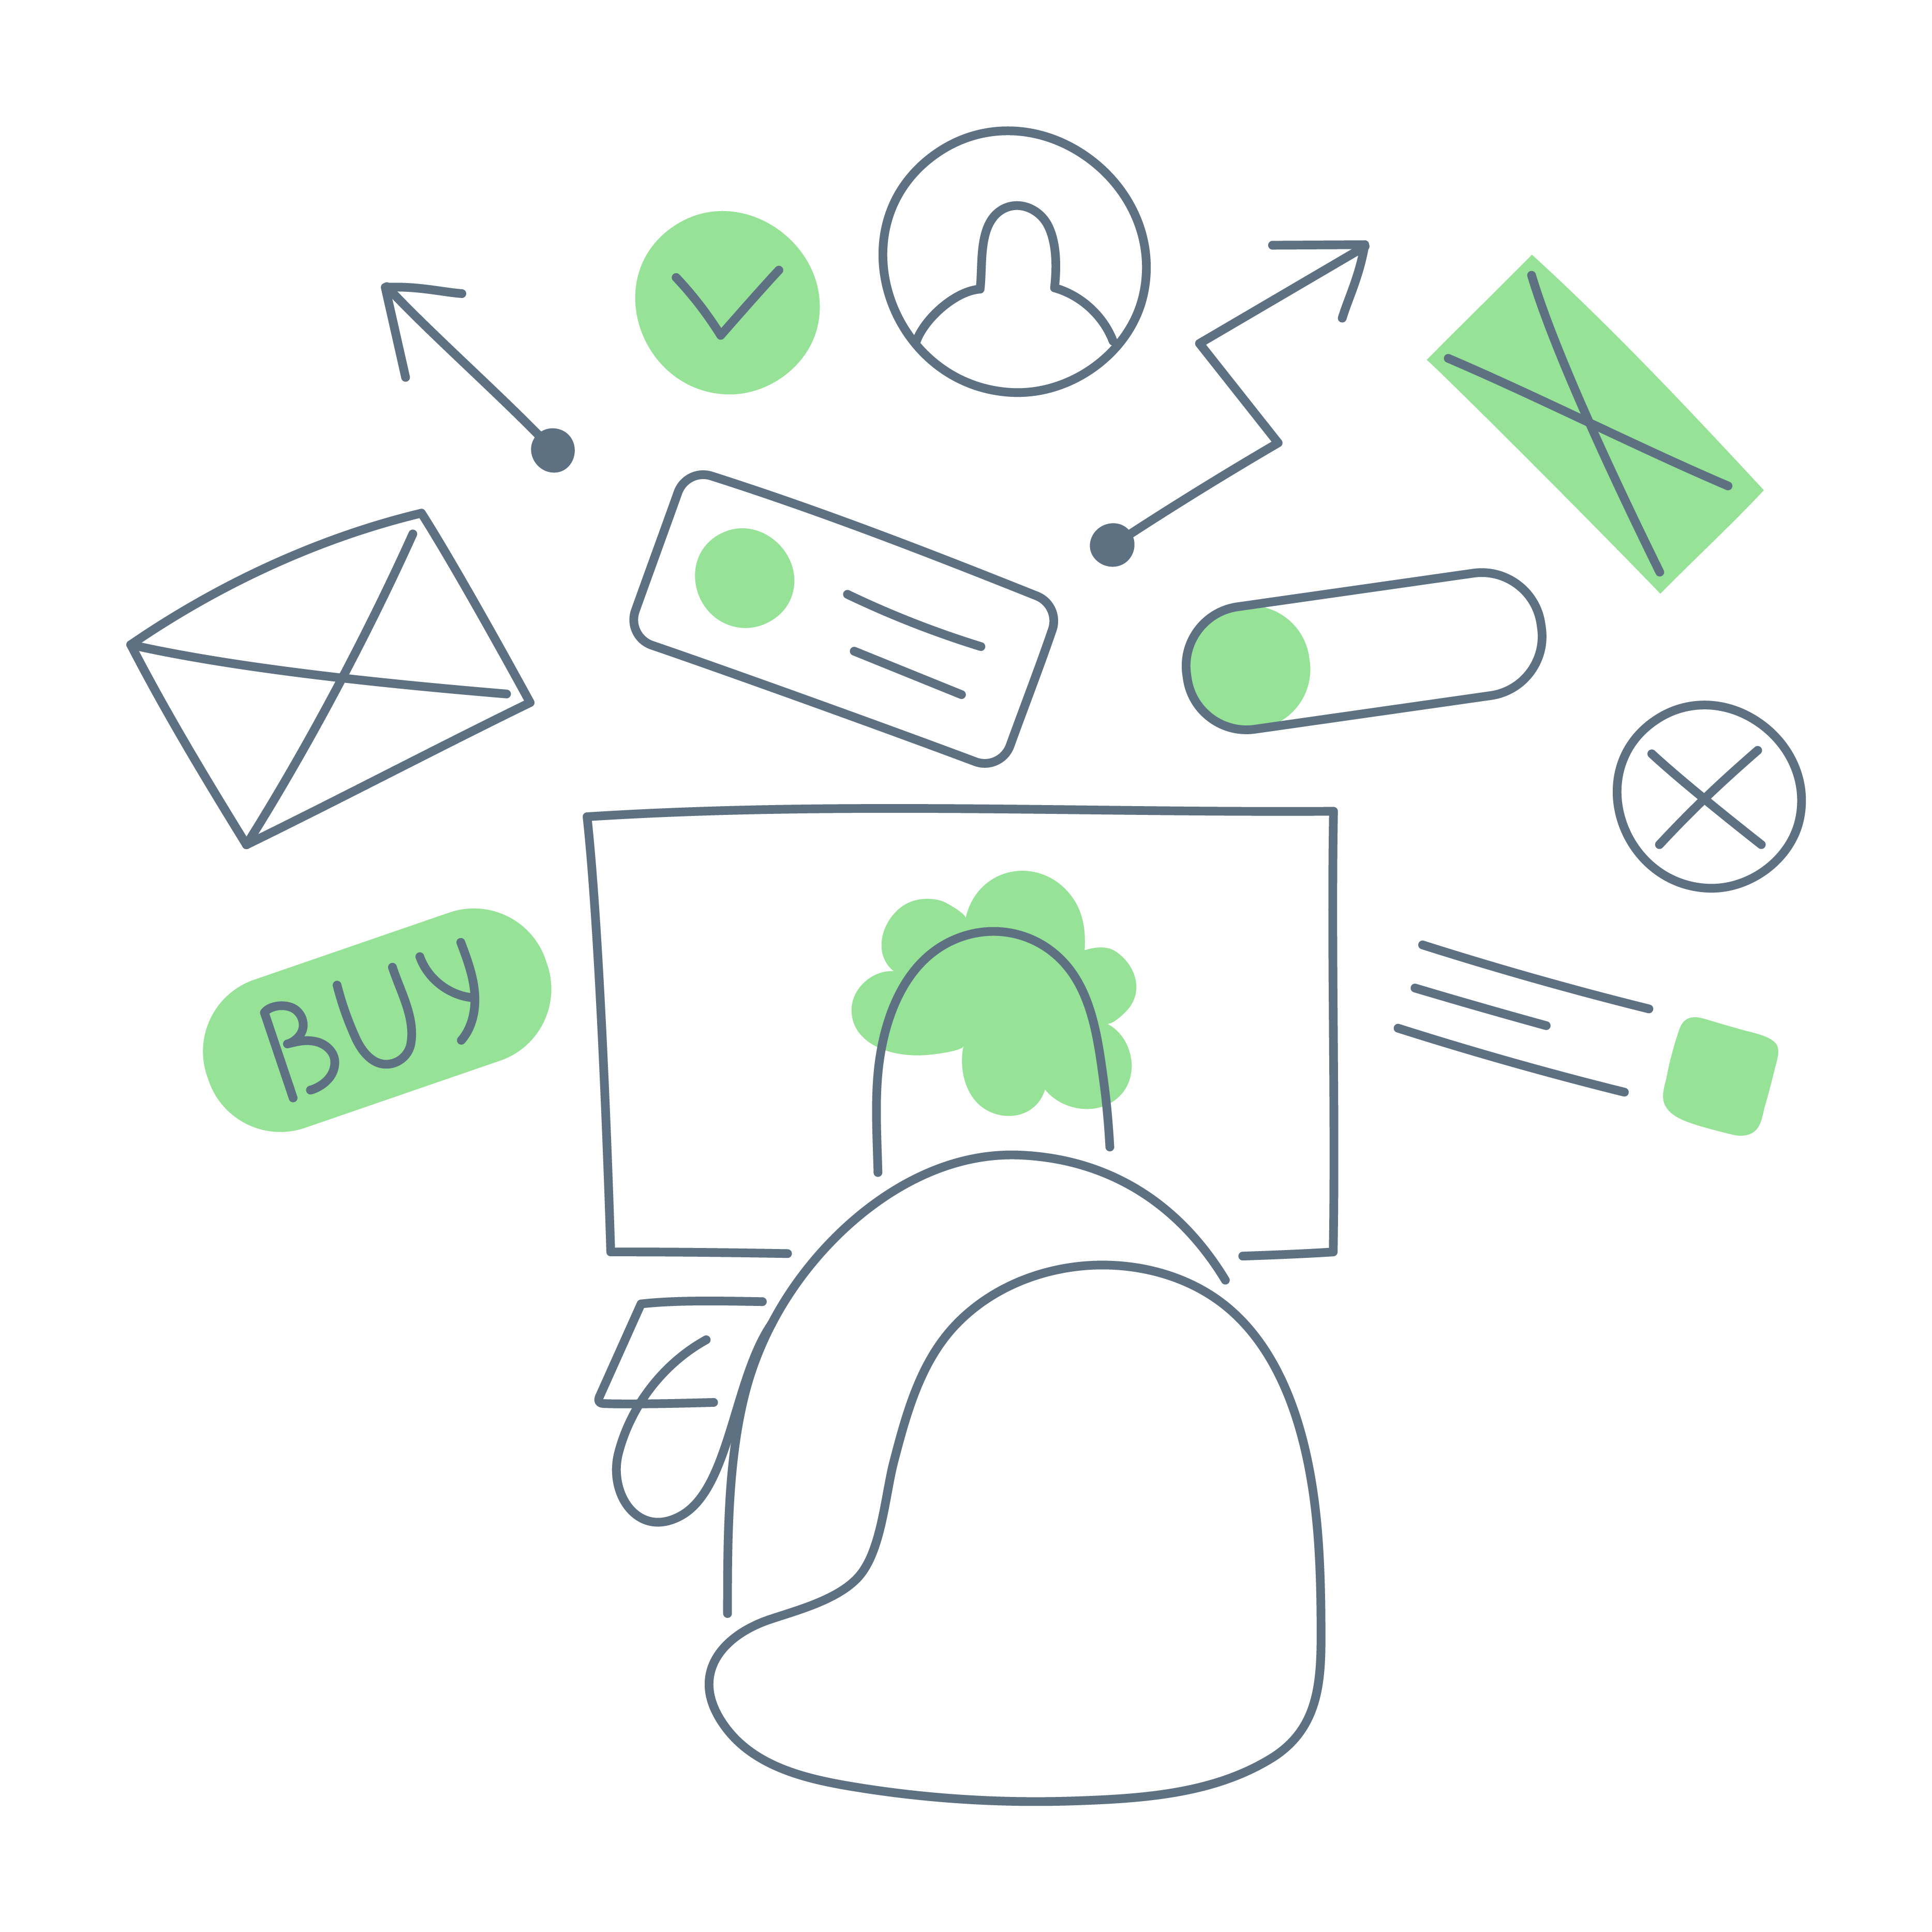 Supply Chain Illustration 01.png